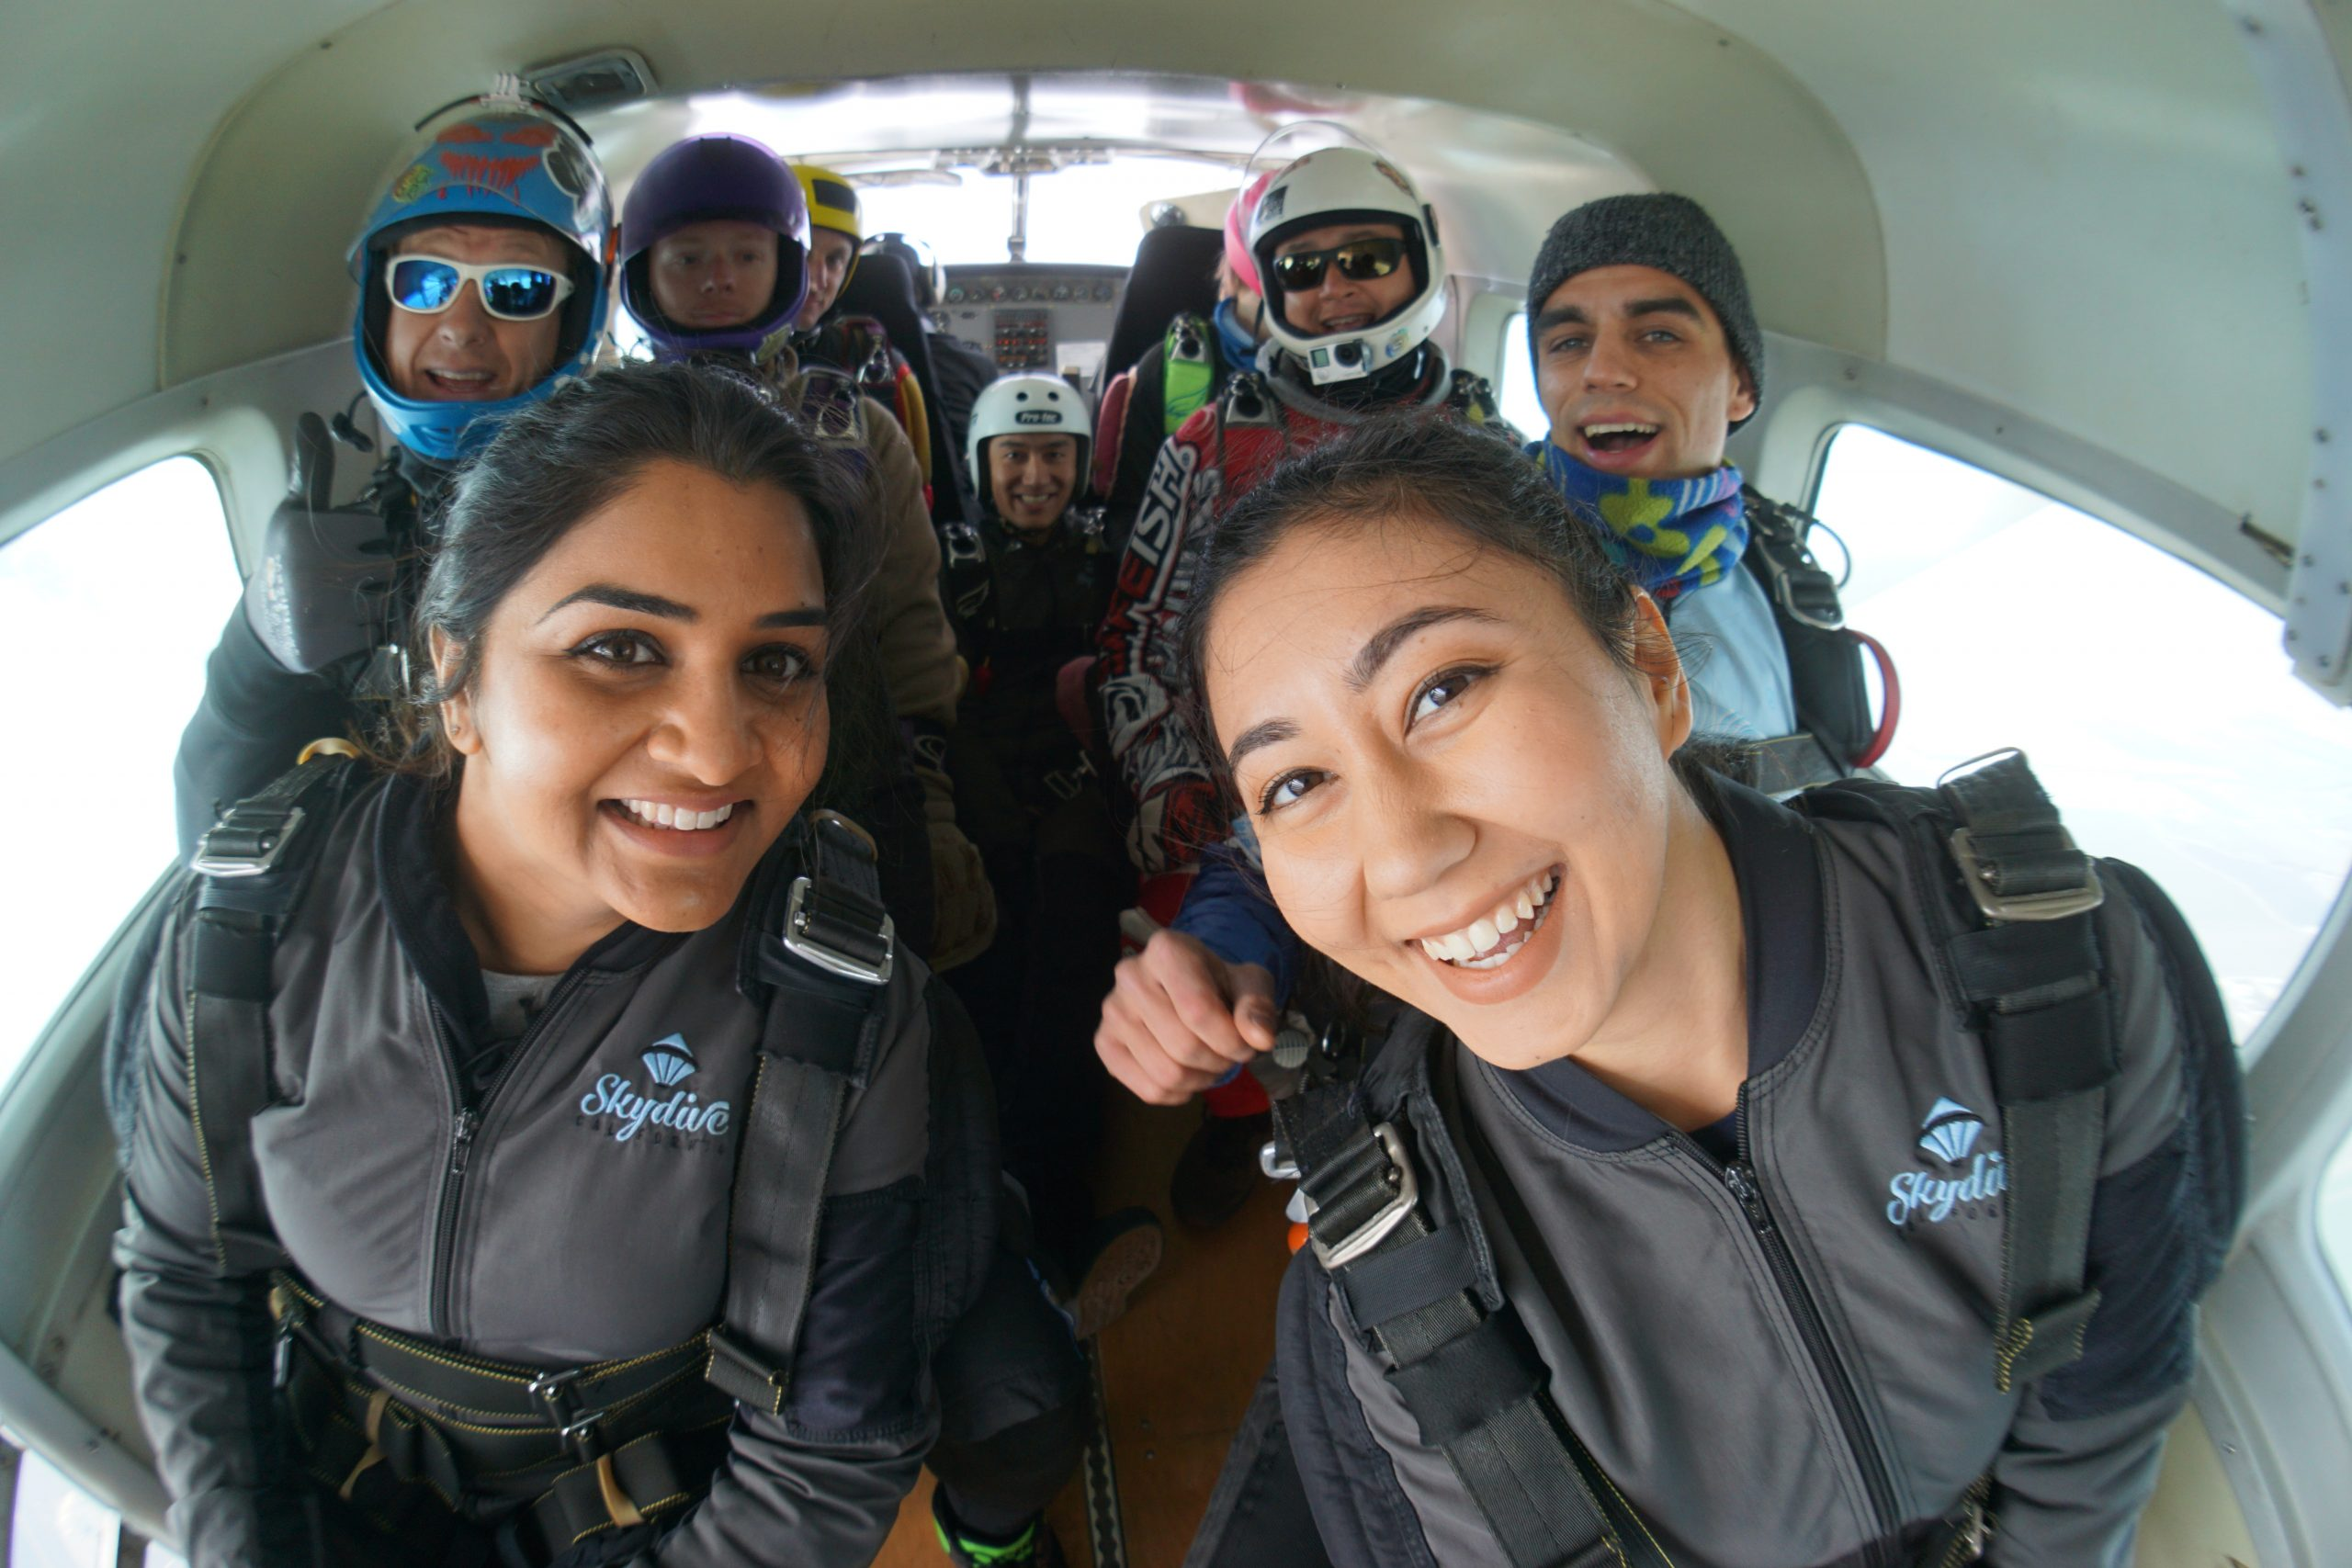 skydiving in california skydiving experience description skydiving plane